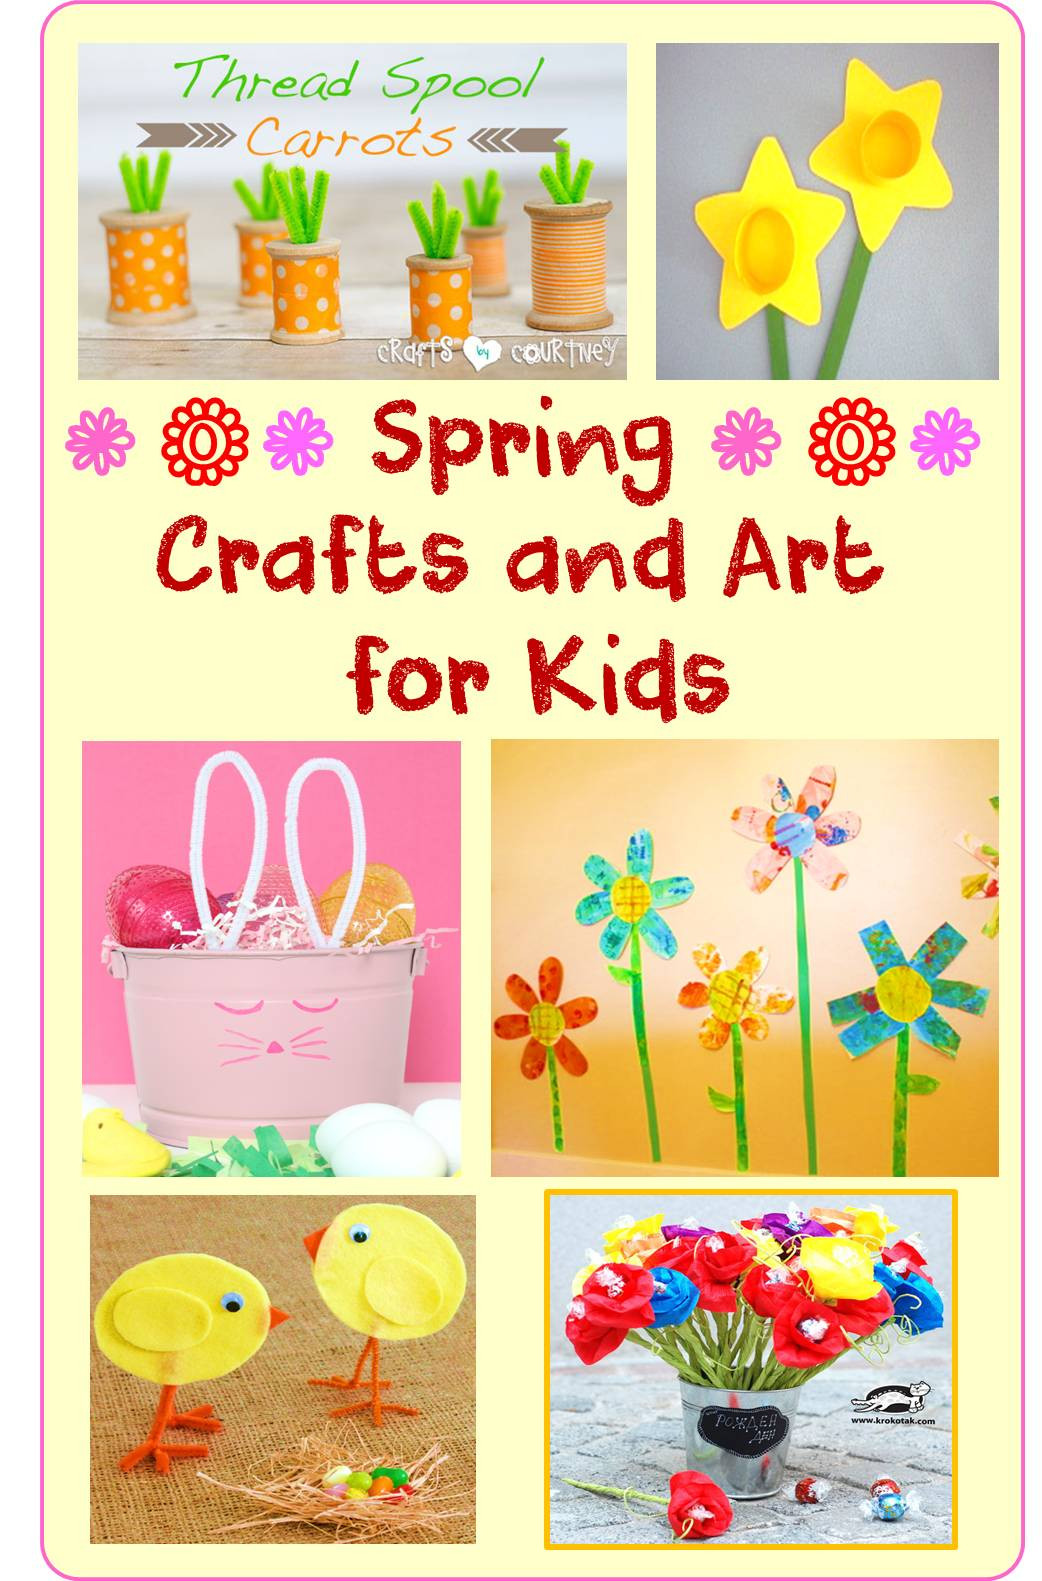 Best ideas about Spring Arts And Crafts For Kids . Save or Pin Spring Crafts and Art for Kids Now.